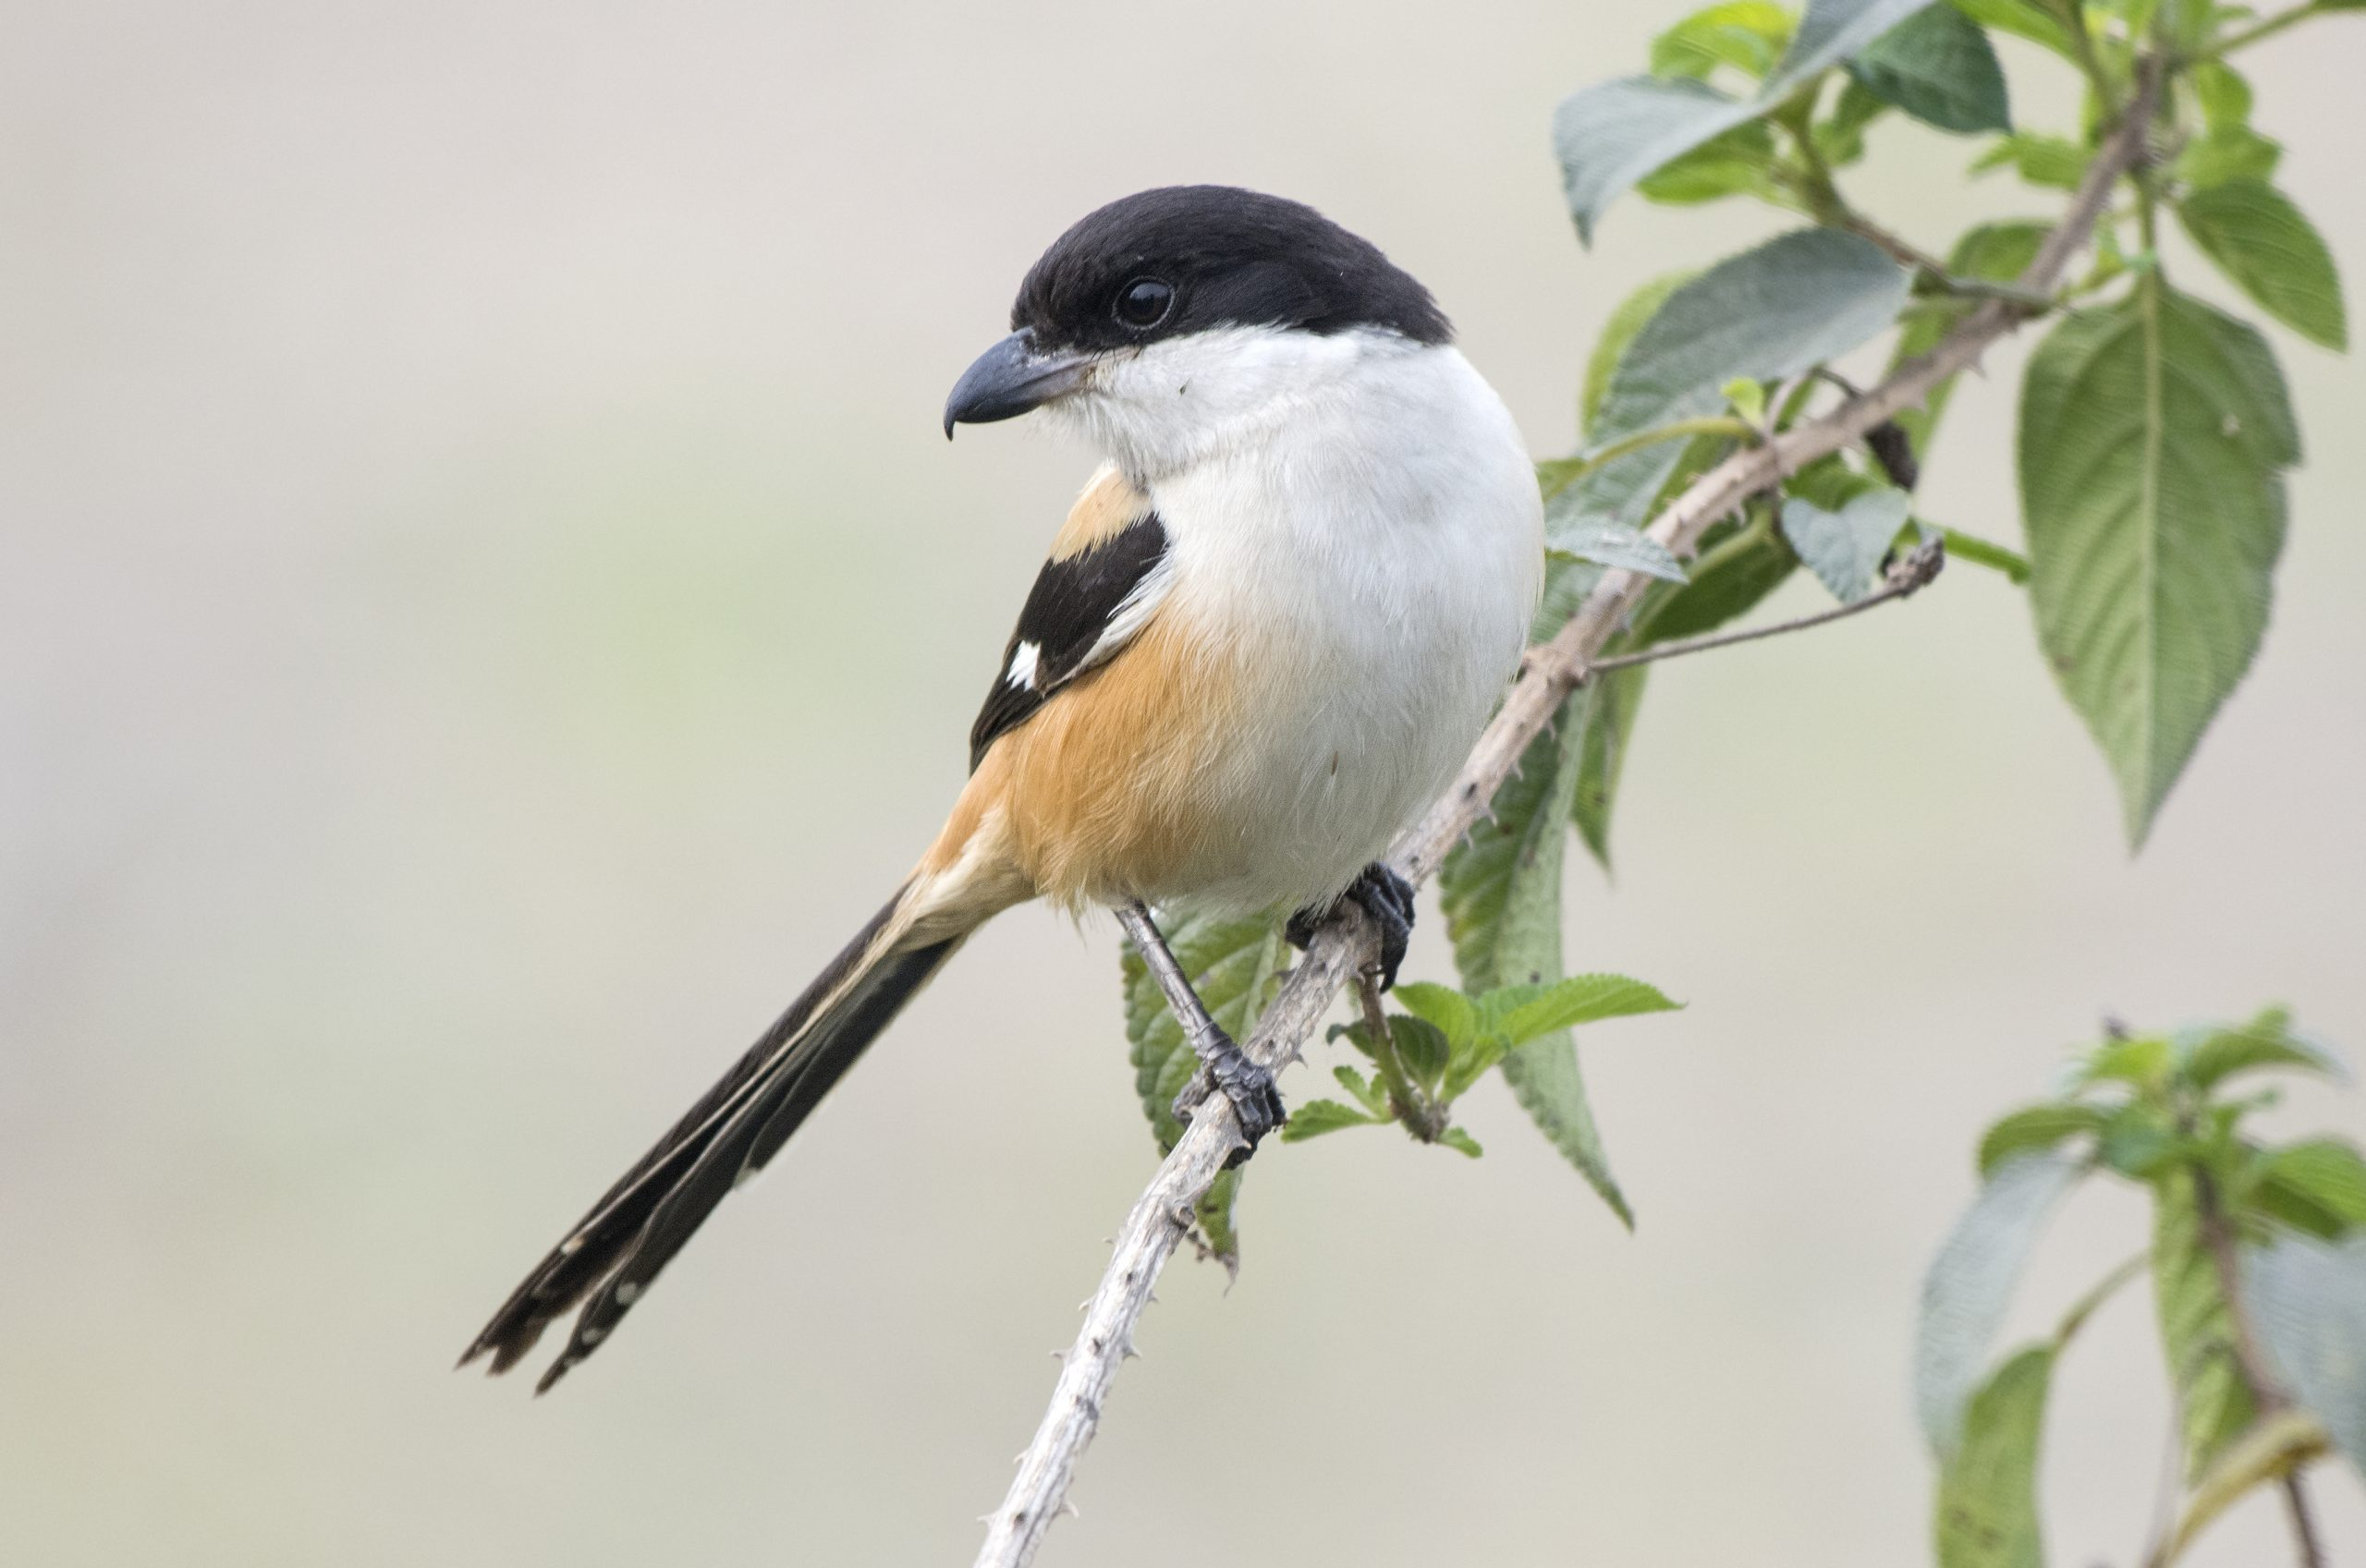 Long-tailed shrike sitting on a branch.